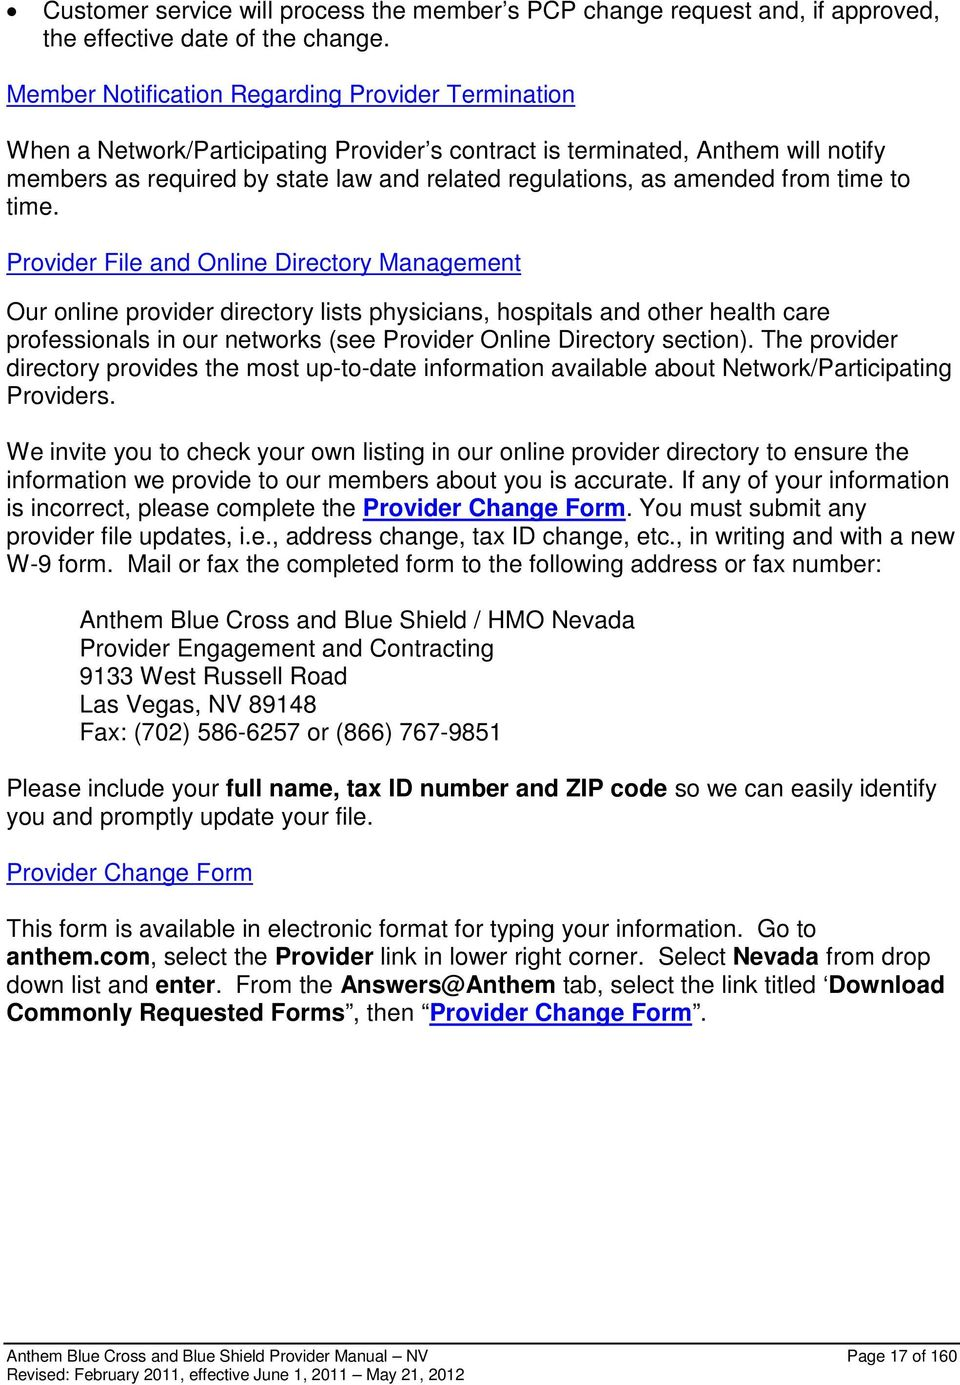 Anthem Blue Cross and Blue Shield Provider Policy and